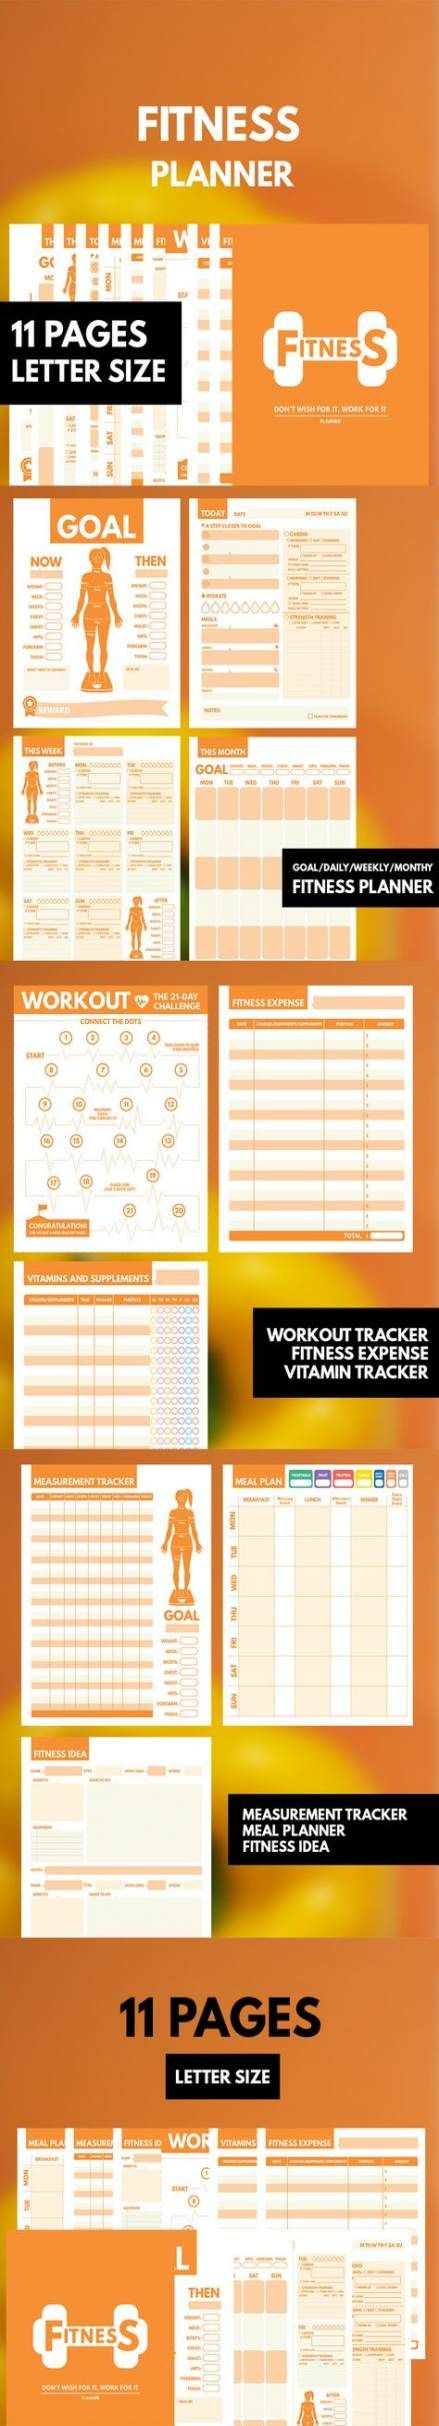 Fitness journal ideas daily 17+ Ideas for 2019 #fitness